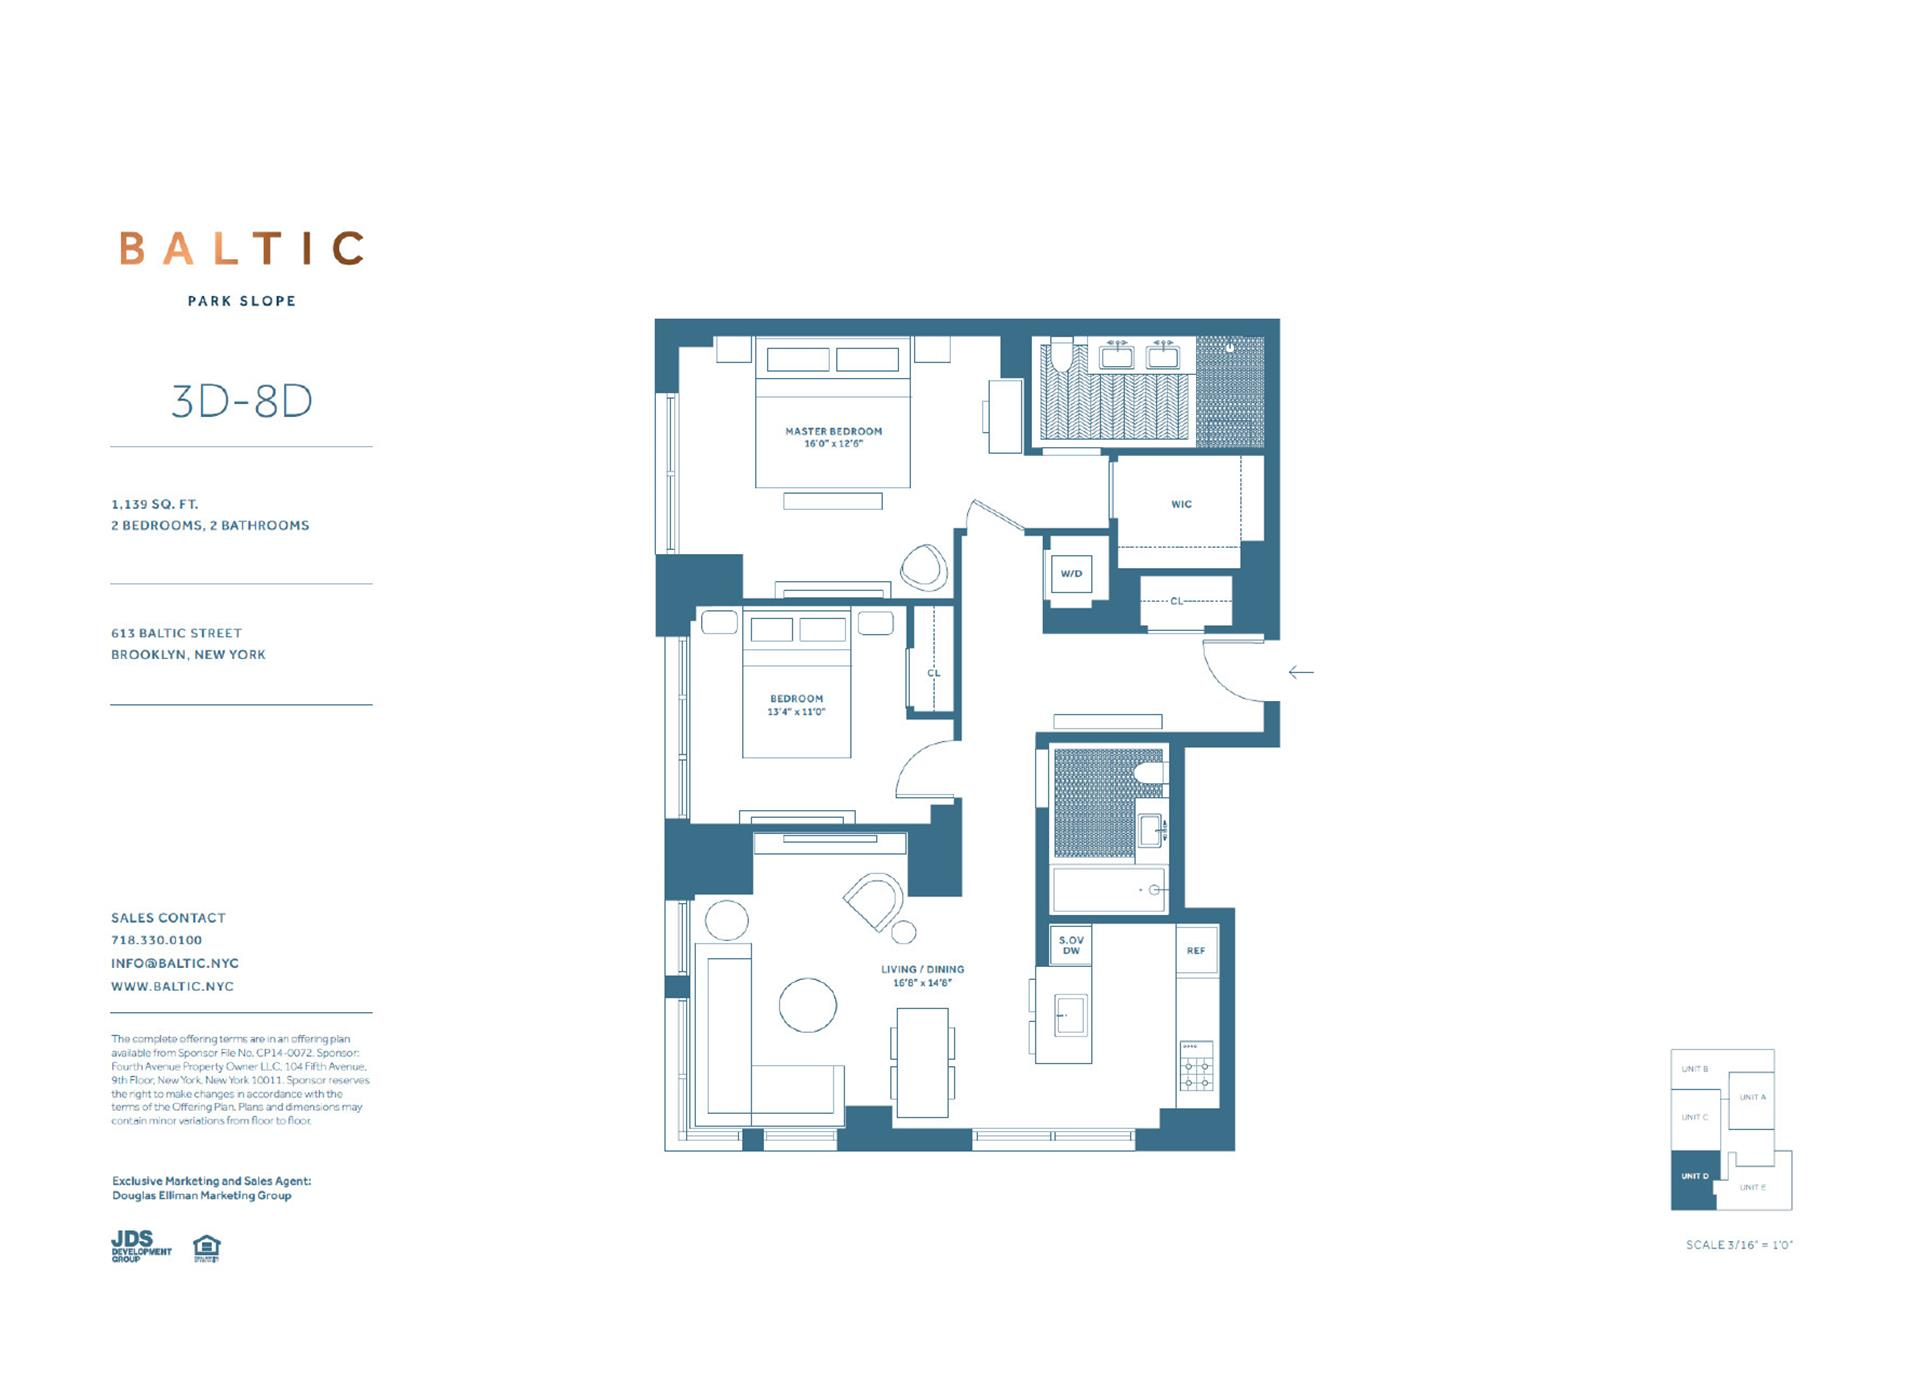 Floor plan of 613 Baltic St, 4D - Park Slope, New York